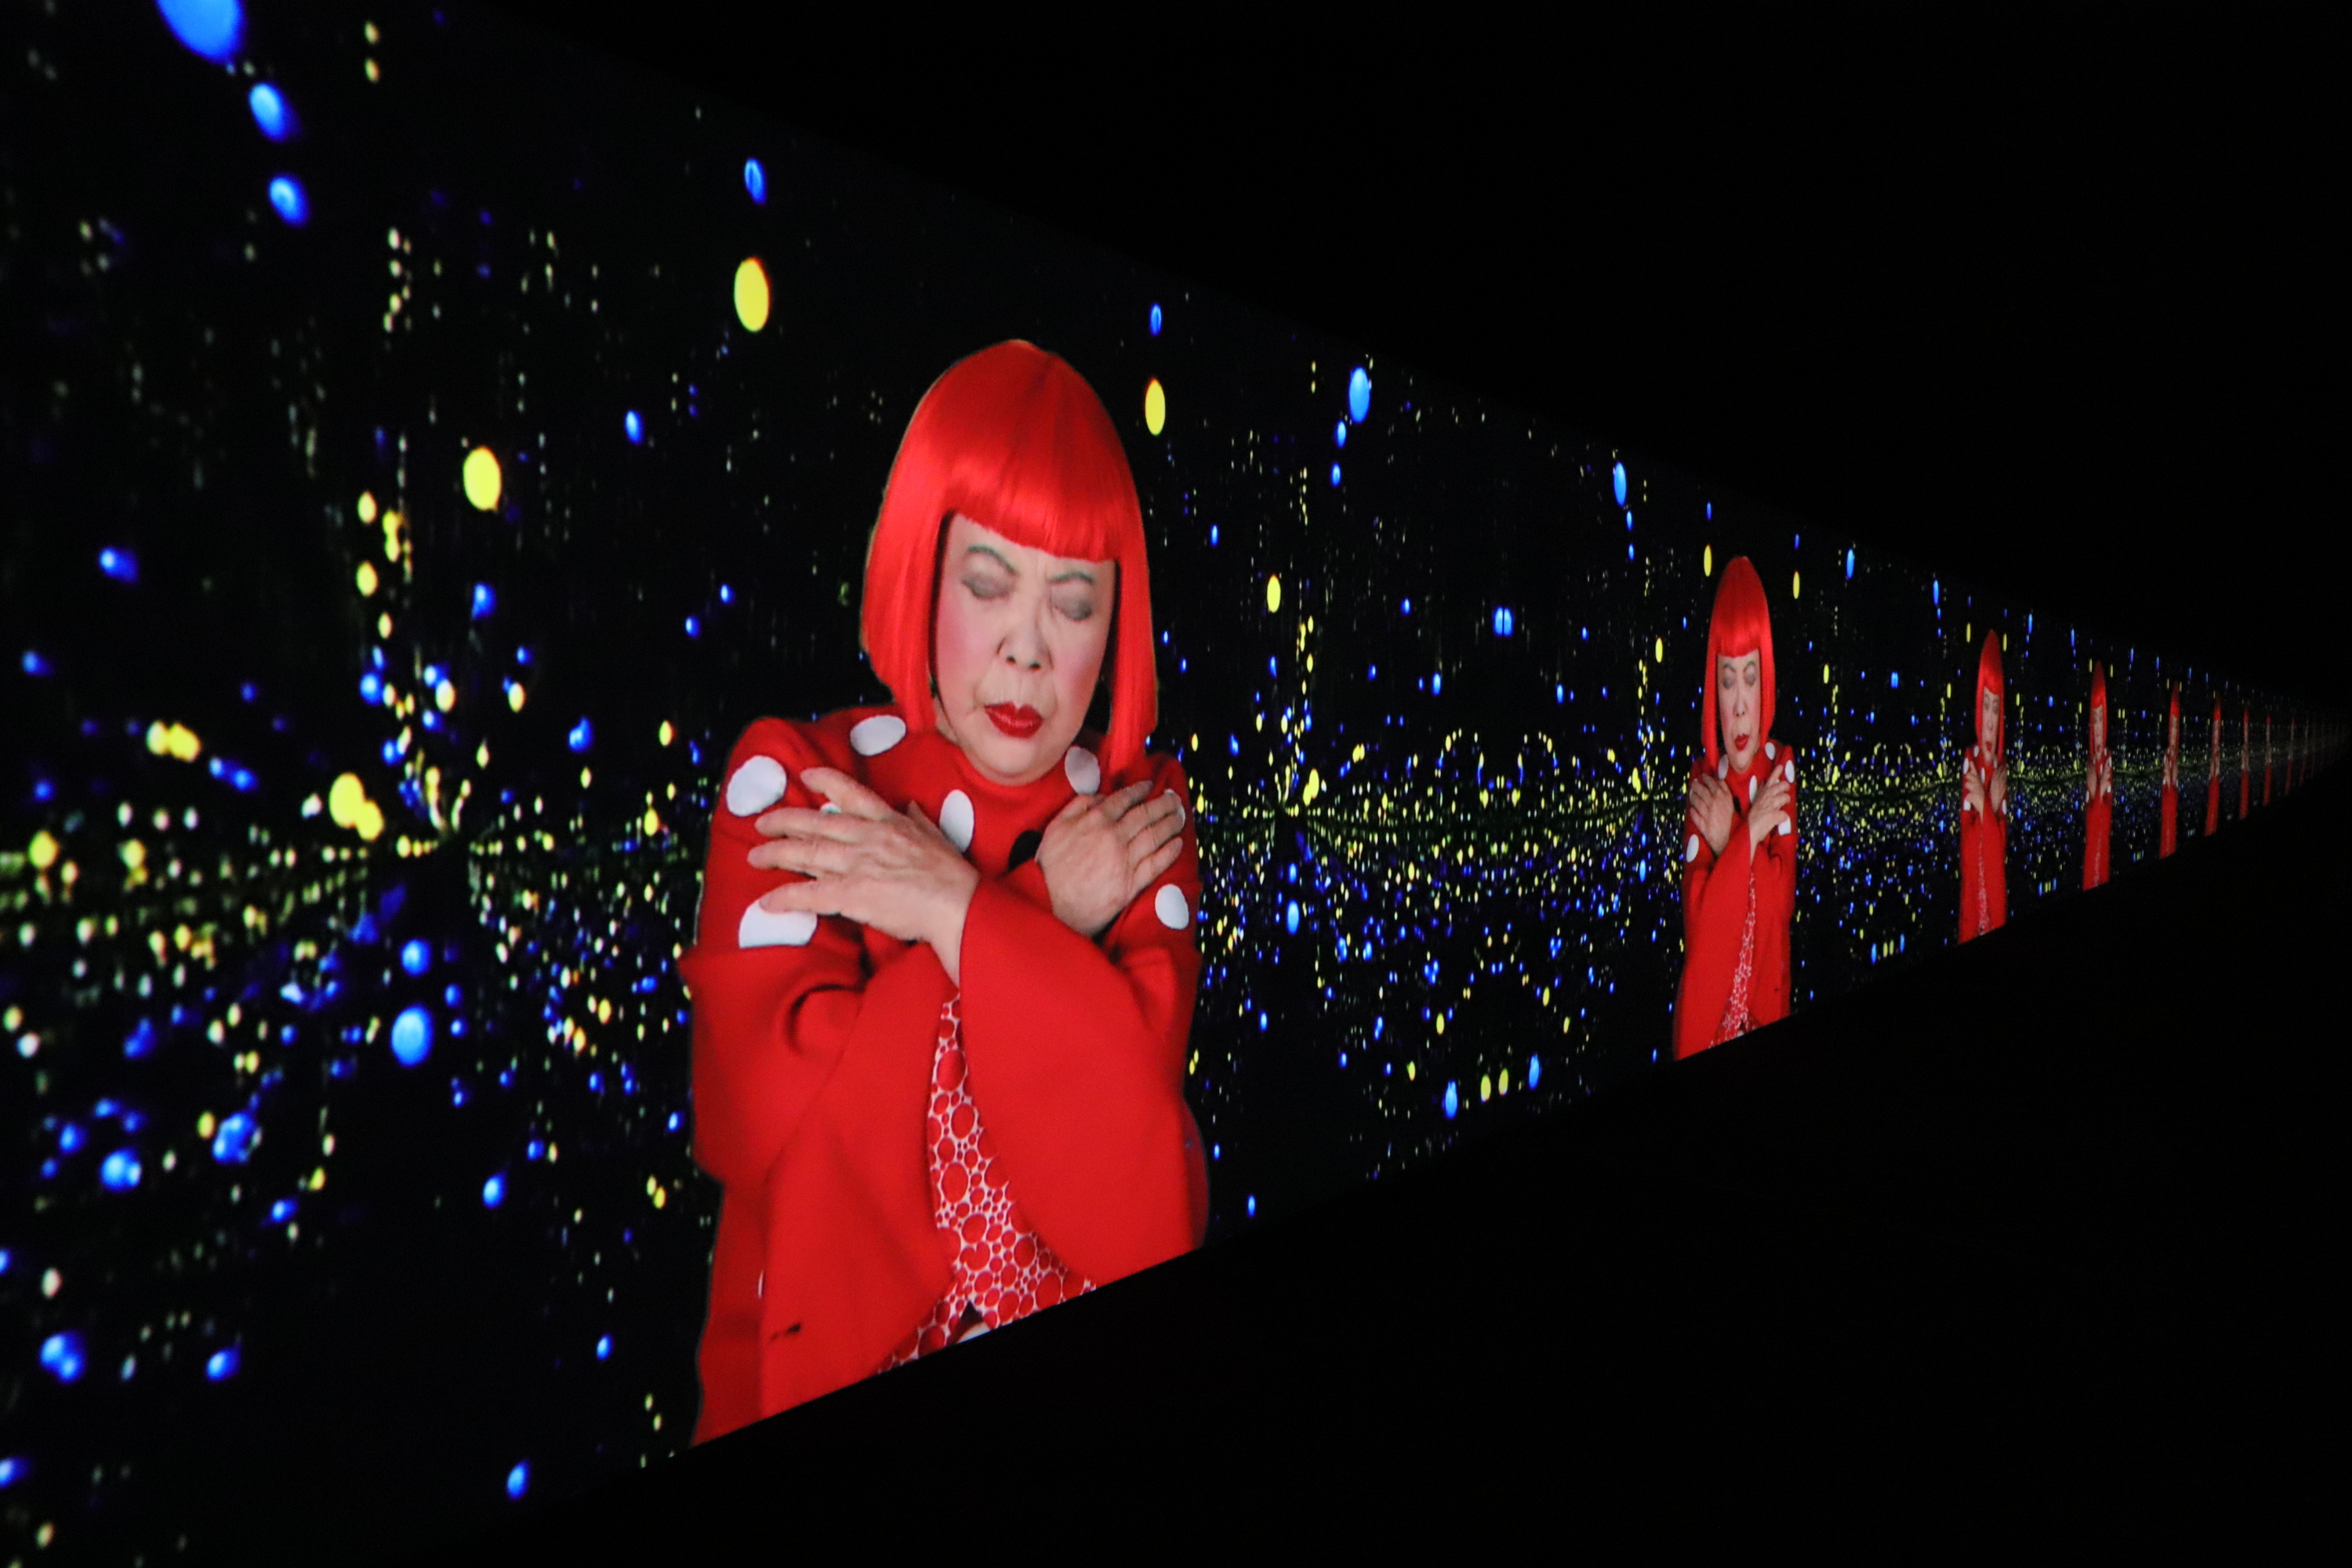 This new Yayoi Kusama exhibition will feature never-before-seen works of art